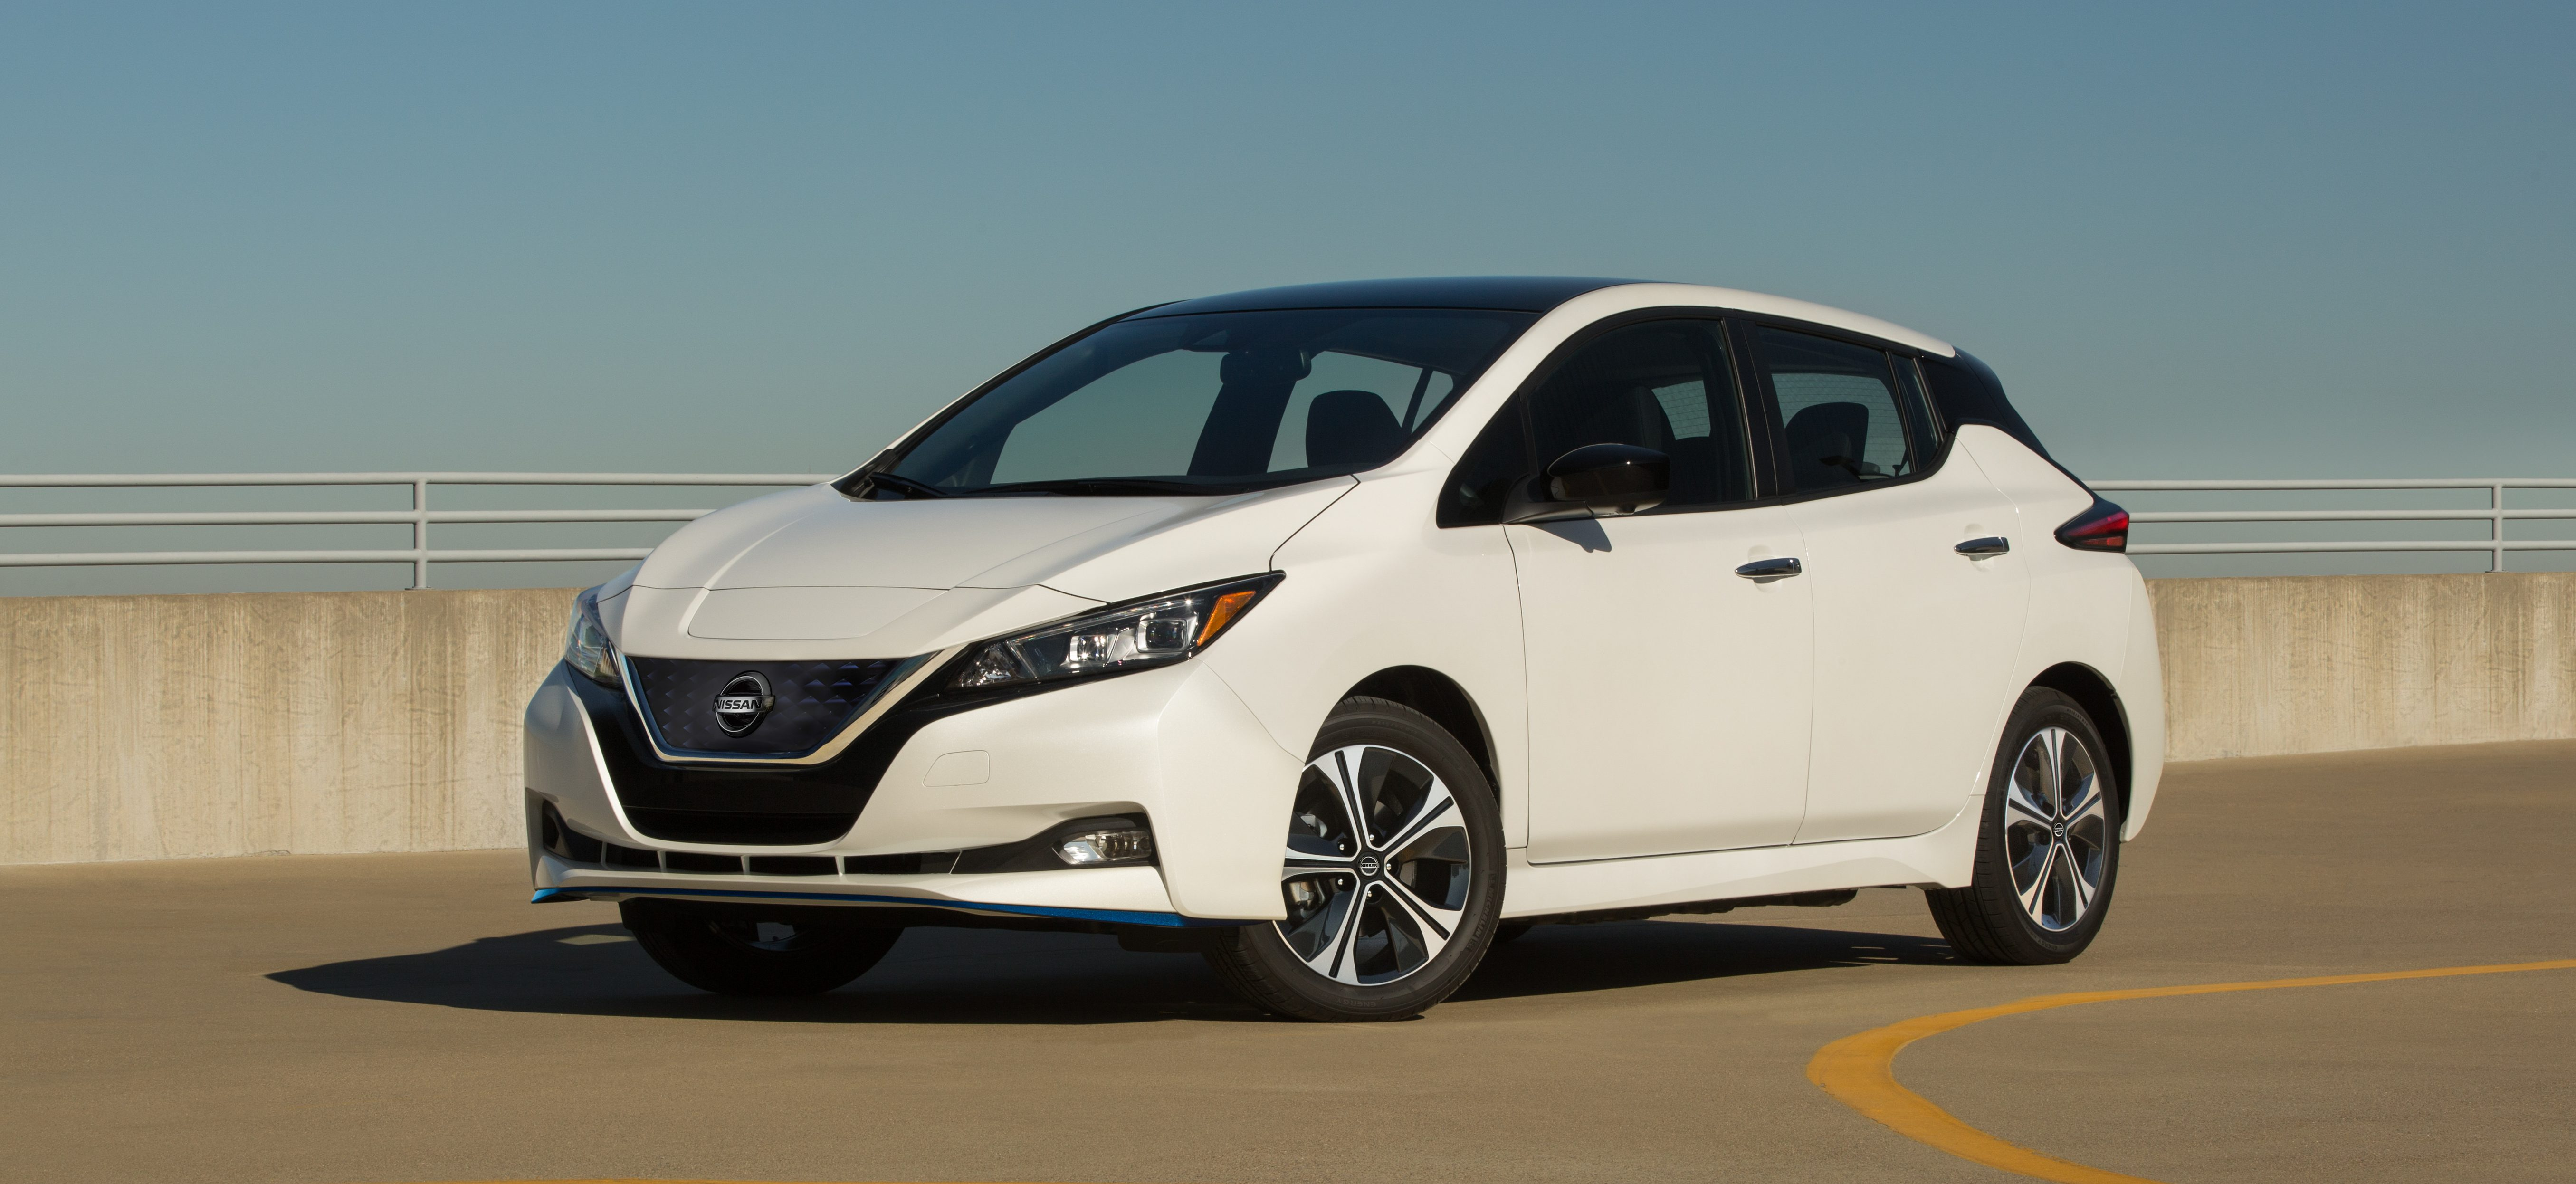 Nissan announces 2020 Leaf pricing; starts at $31,600 for 40 kWh, $38,200  for 62 kWh - Electrek